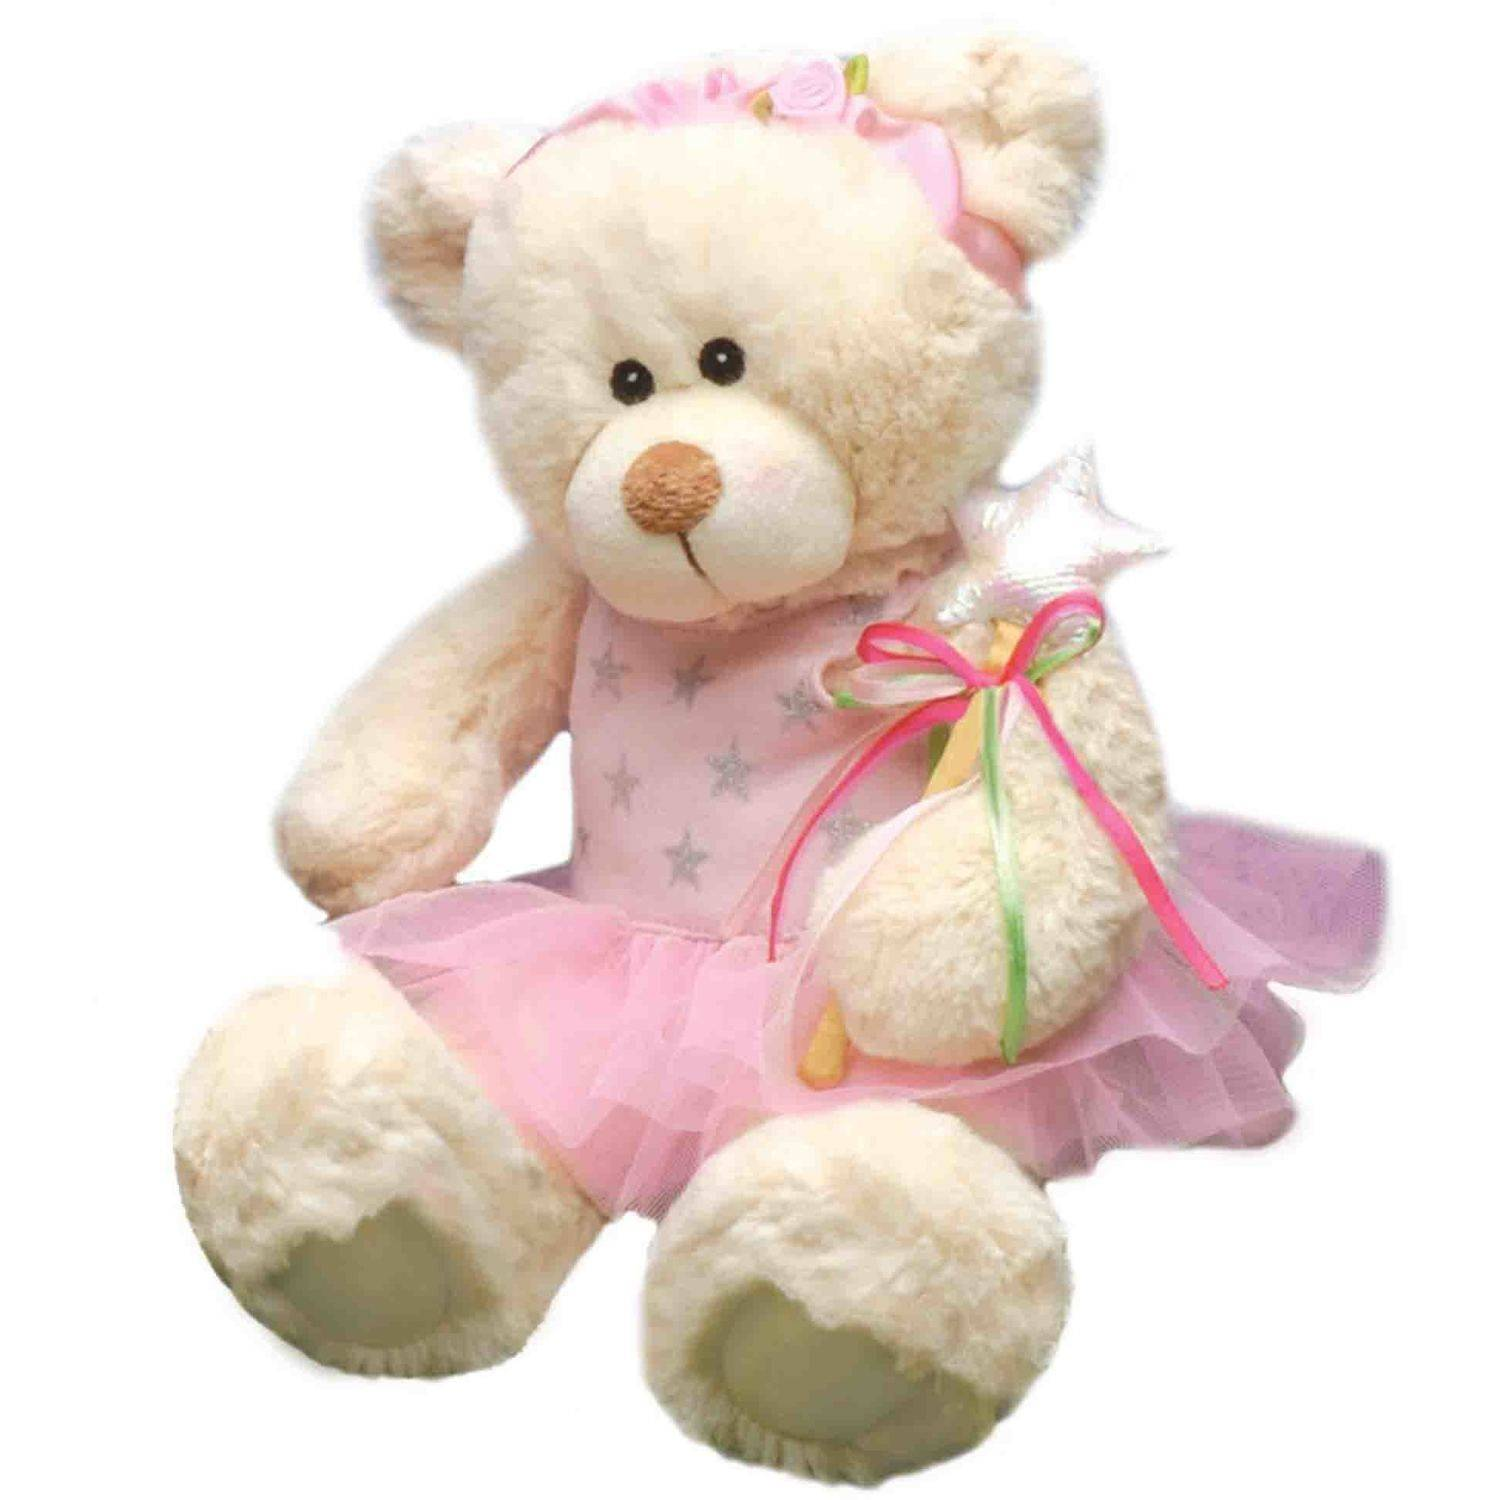 "First and Main, Inc. 7"" Ballerina Bear Tillie Twinkletoes Stuffed Animal"